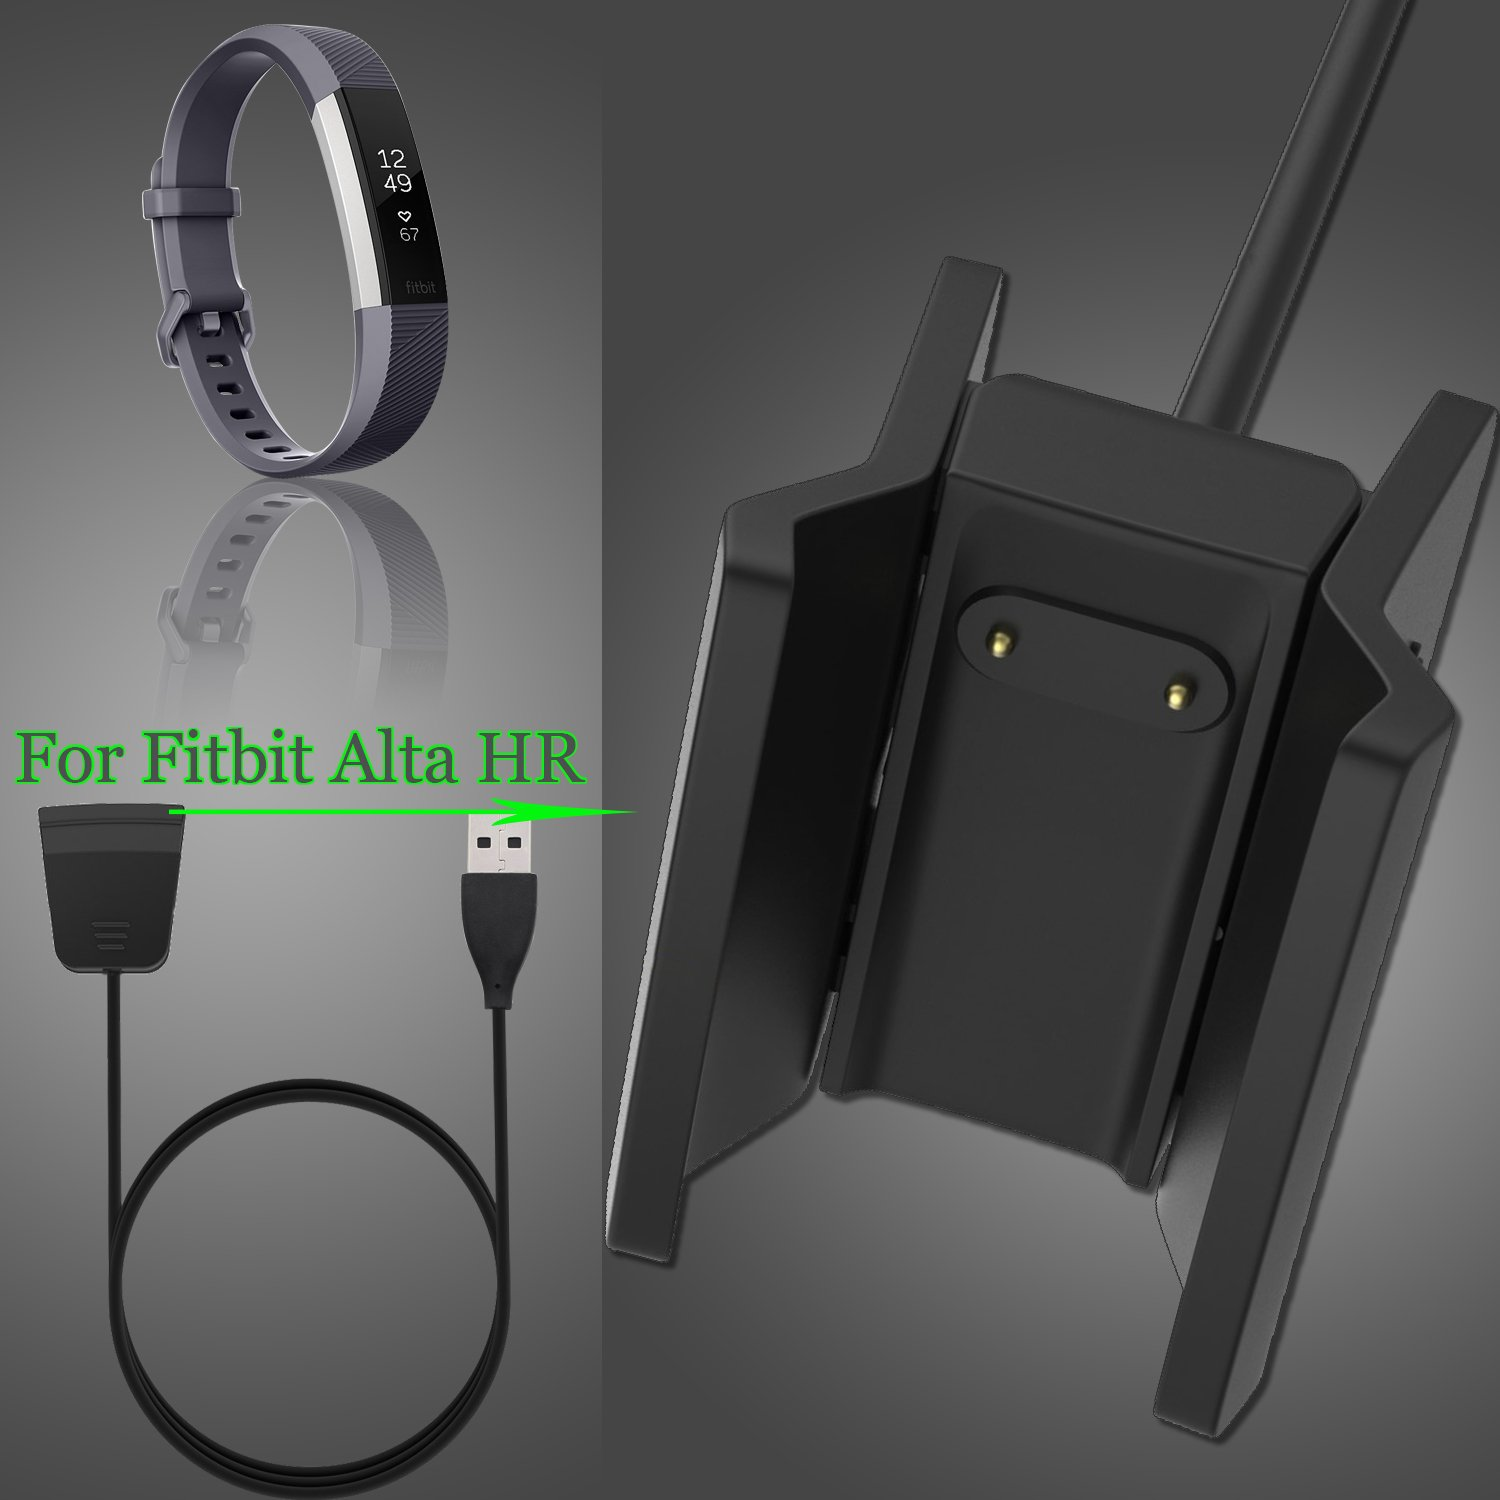 Fitbit Alta HR Charger, KingAcc Replacement USB Charging Cable Cord Dock Charger for Fitbit Alta HR, Fitness Tracker Wristband Smart Watch ...